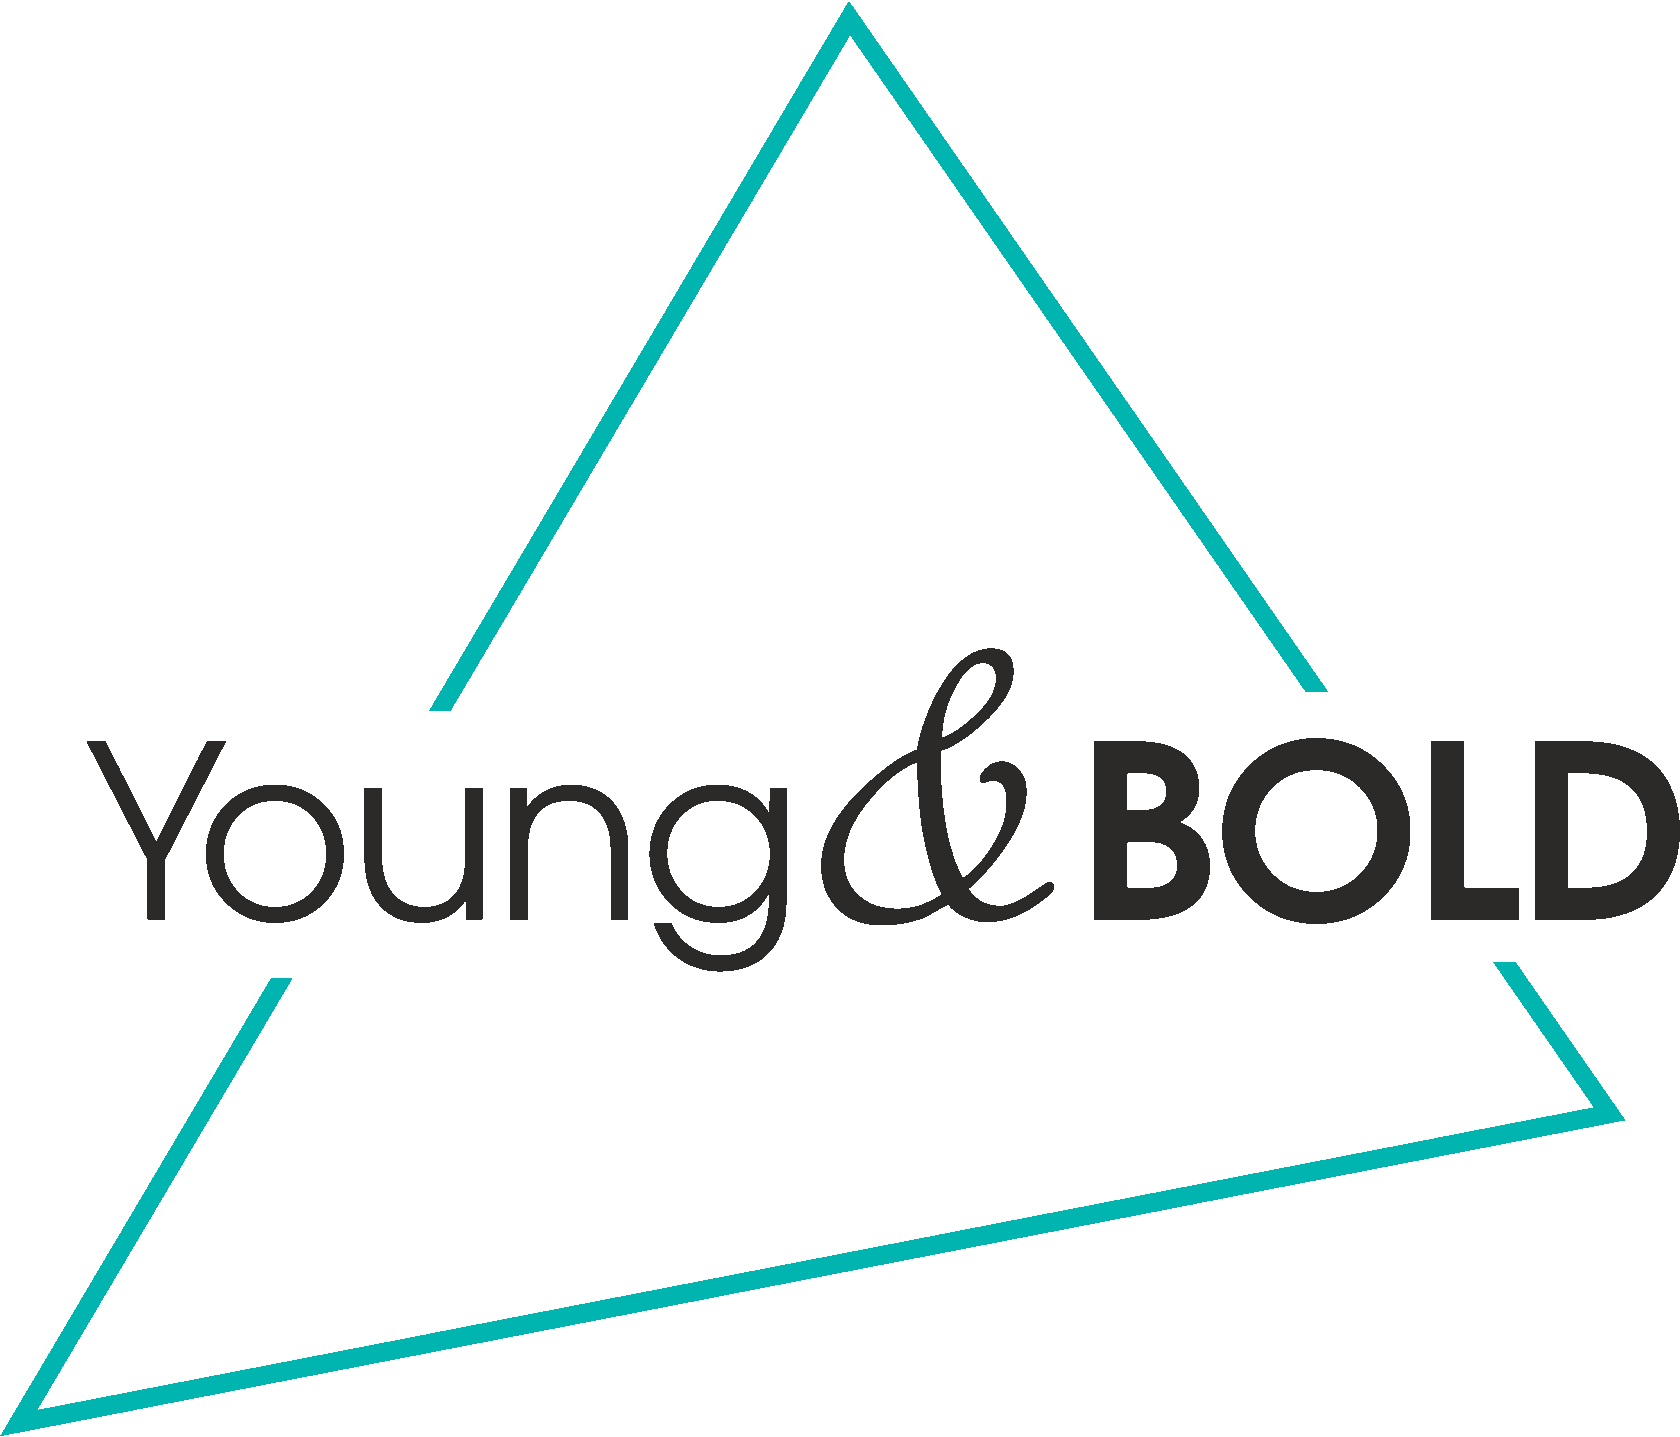 Young& BOLD